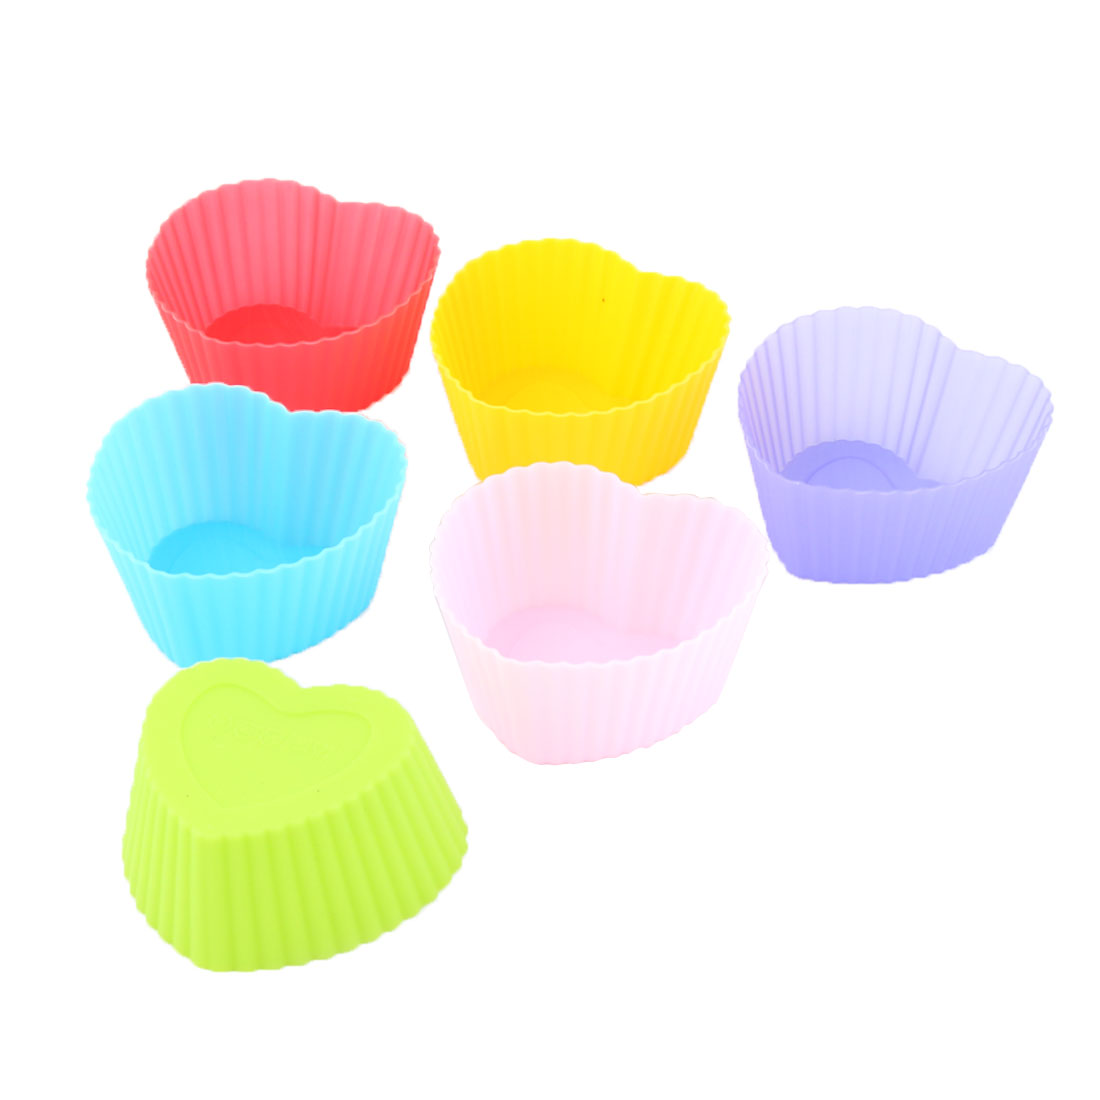 Home Bakery Silicone Heart Shaped Cake Cupcake Mold Pan Baking Storage Cup Assorted Color 6pcs